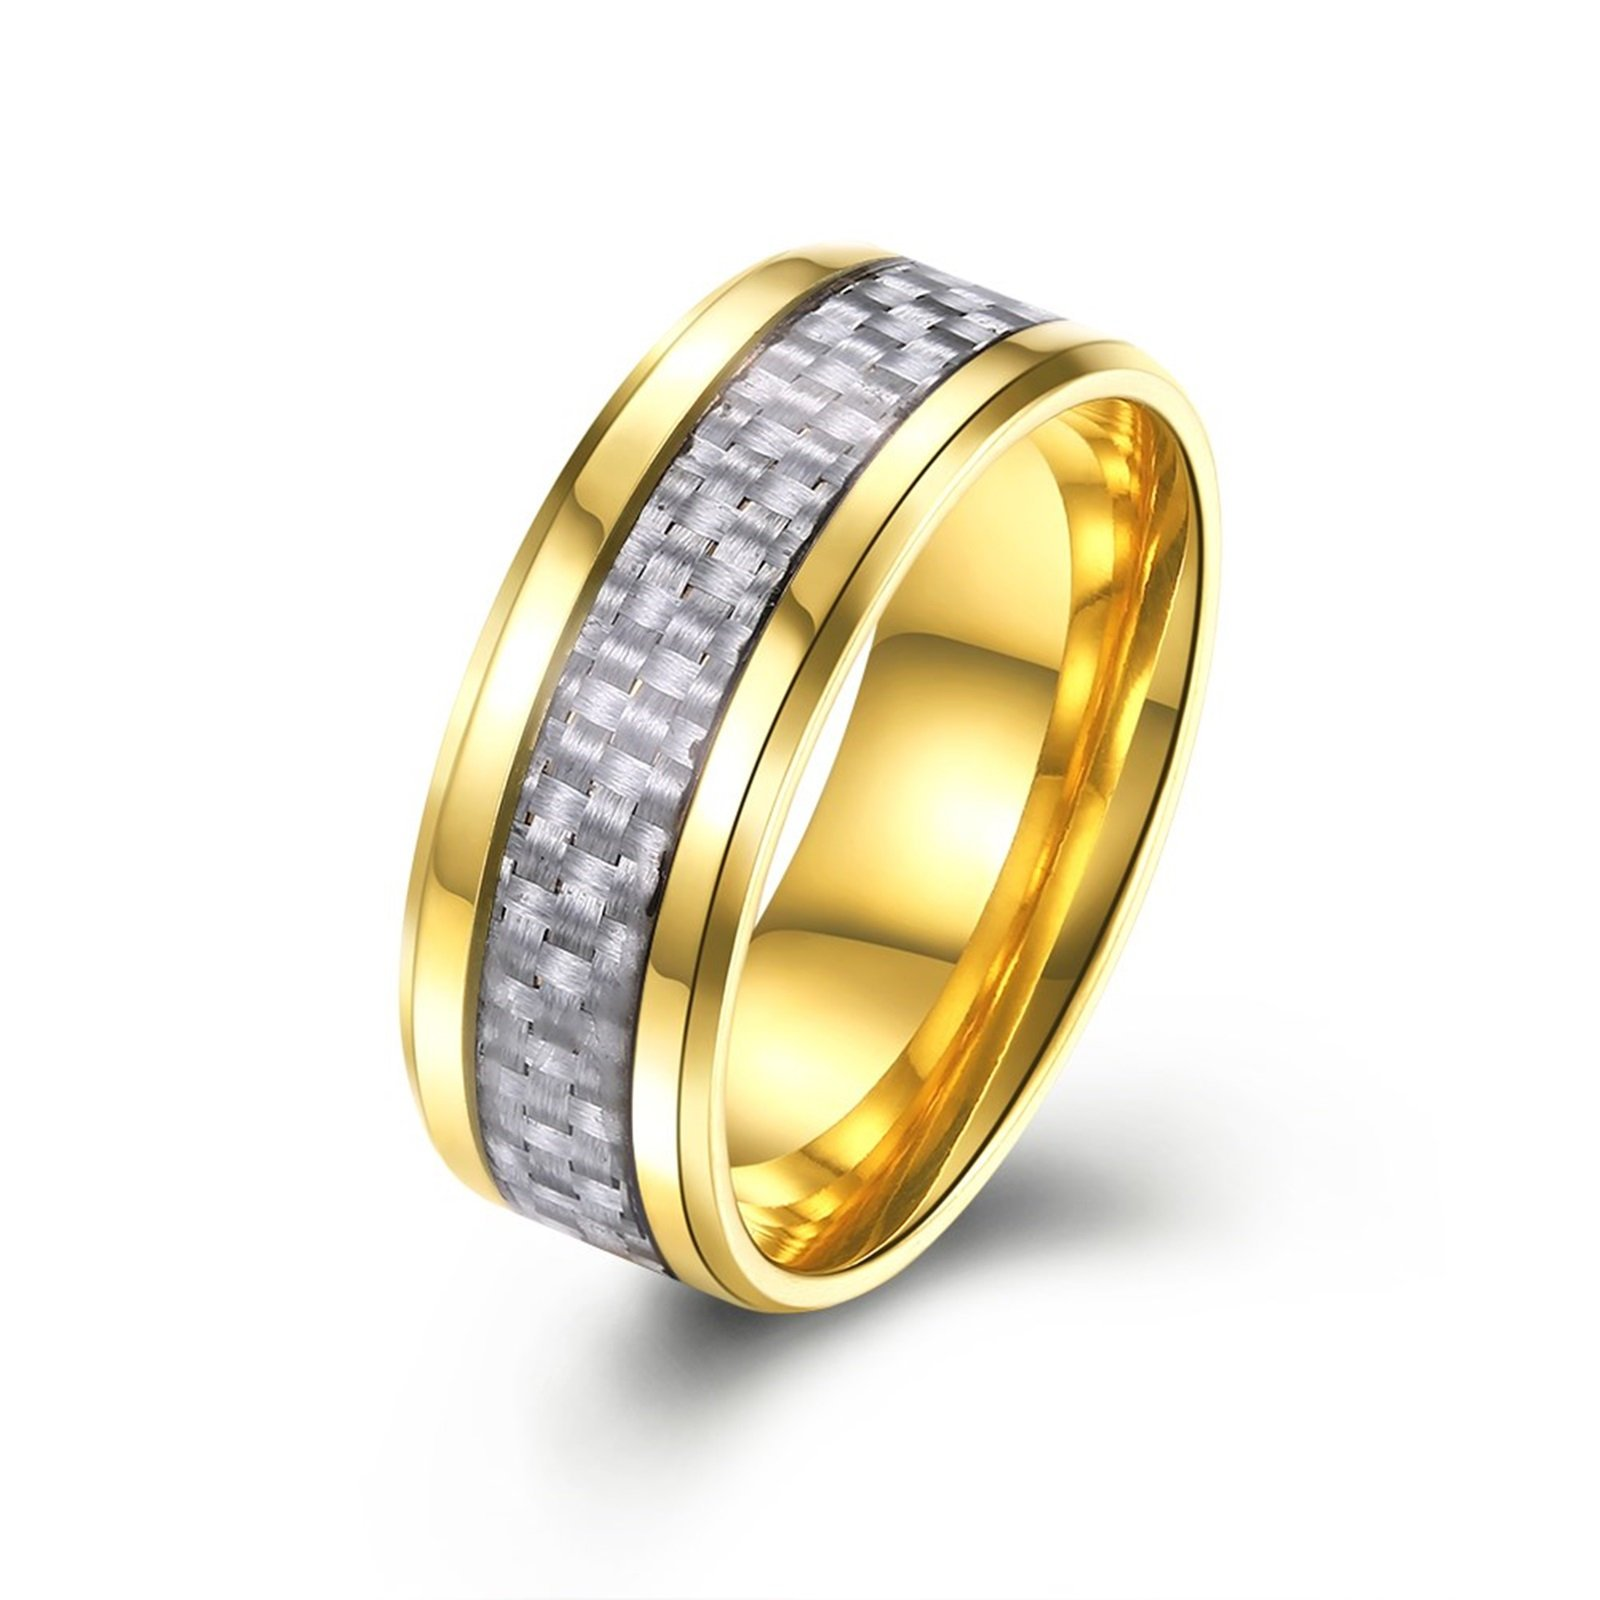 Epinki Stainless Steel Wedding Rings for Men Silver Carbon Fiber Inlaid 8MM Gold Ring Size 8 Men Accessories